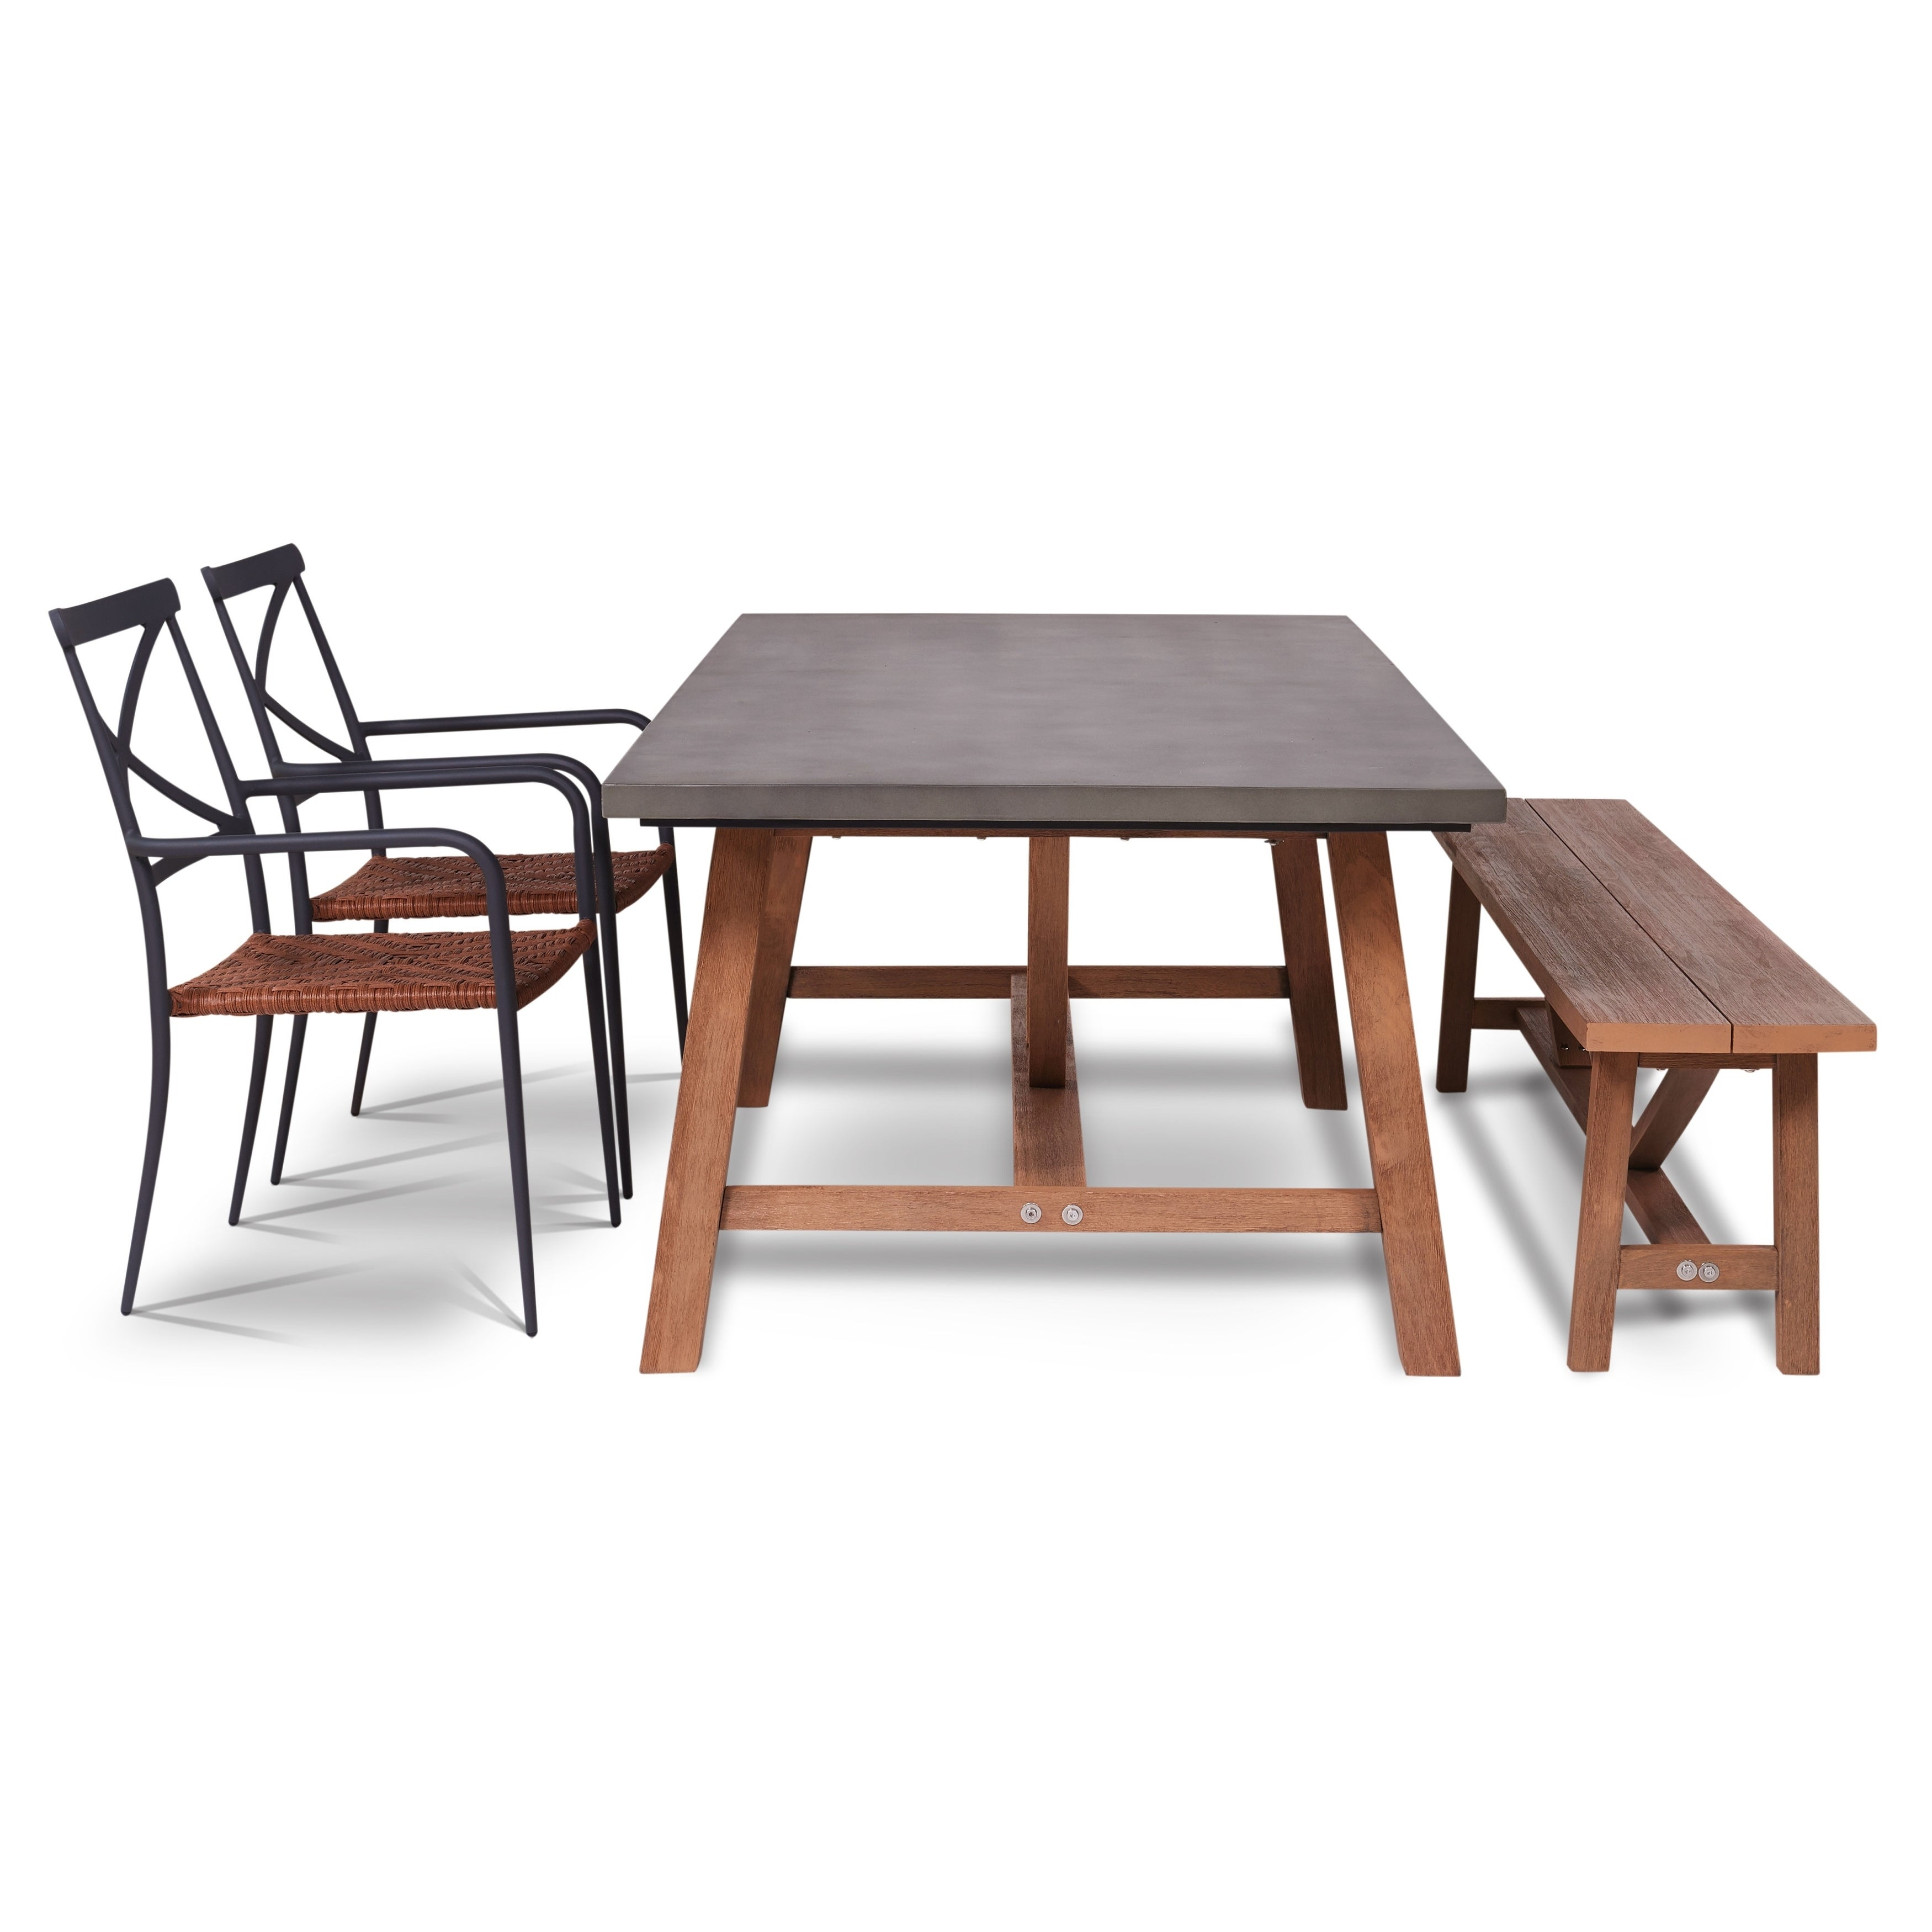 Outstanding Amalfi 4 Piece Outdoor Dining Set With Cement Tabletop Ibusinesslaw Wood Chair Design Ideas Ibusinesslaworg